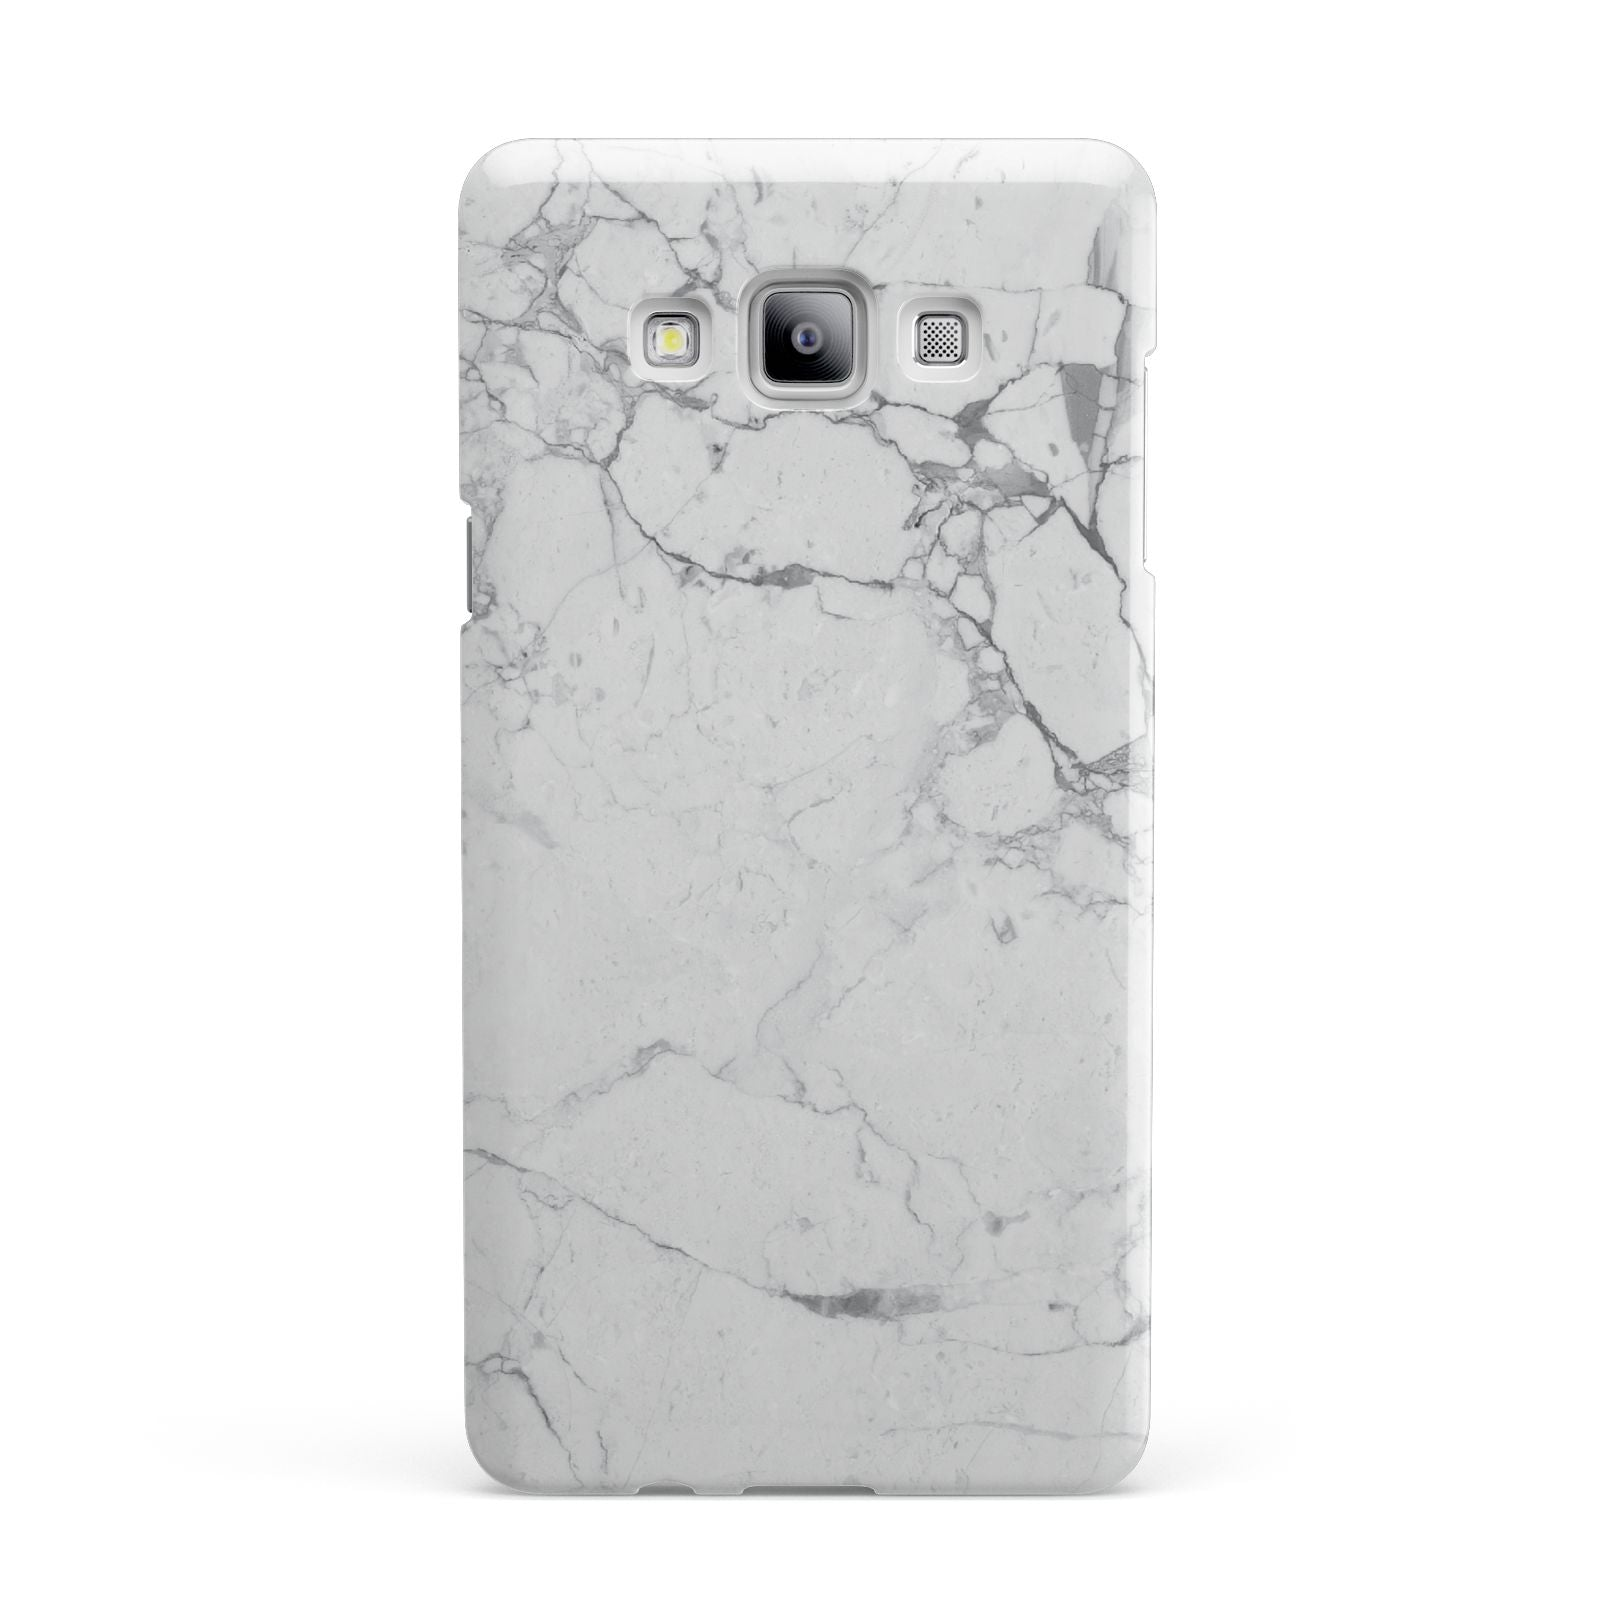 Faux Marble Effect Grey White Samsung Galaxy A7 2015 Case